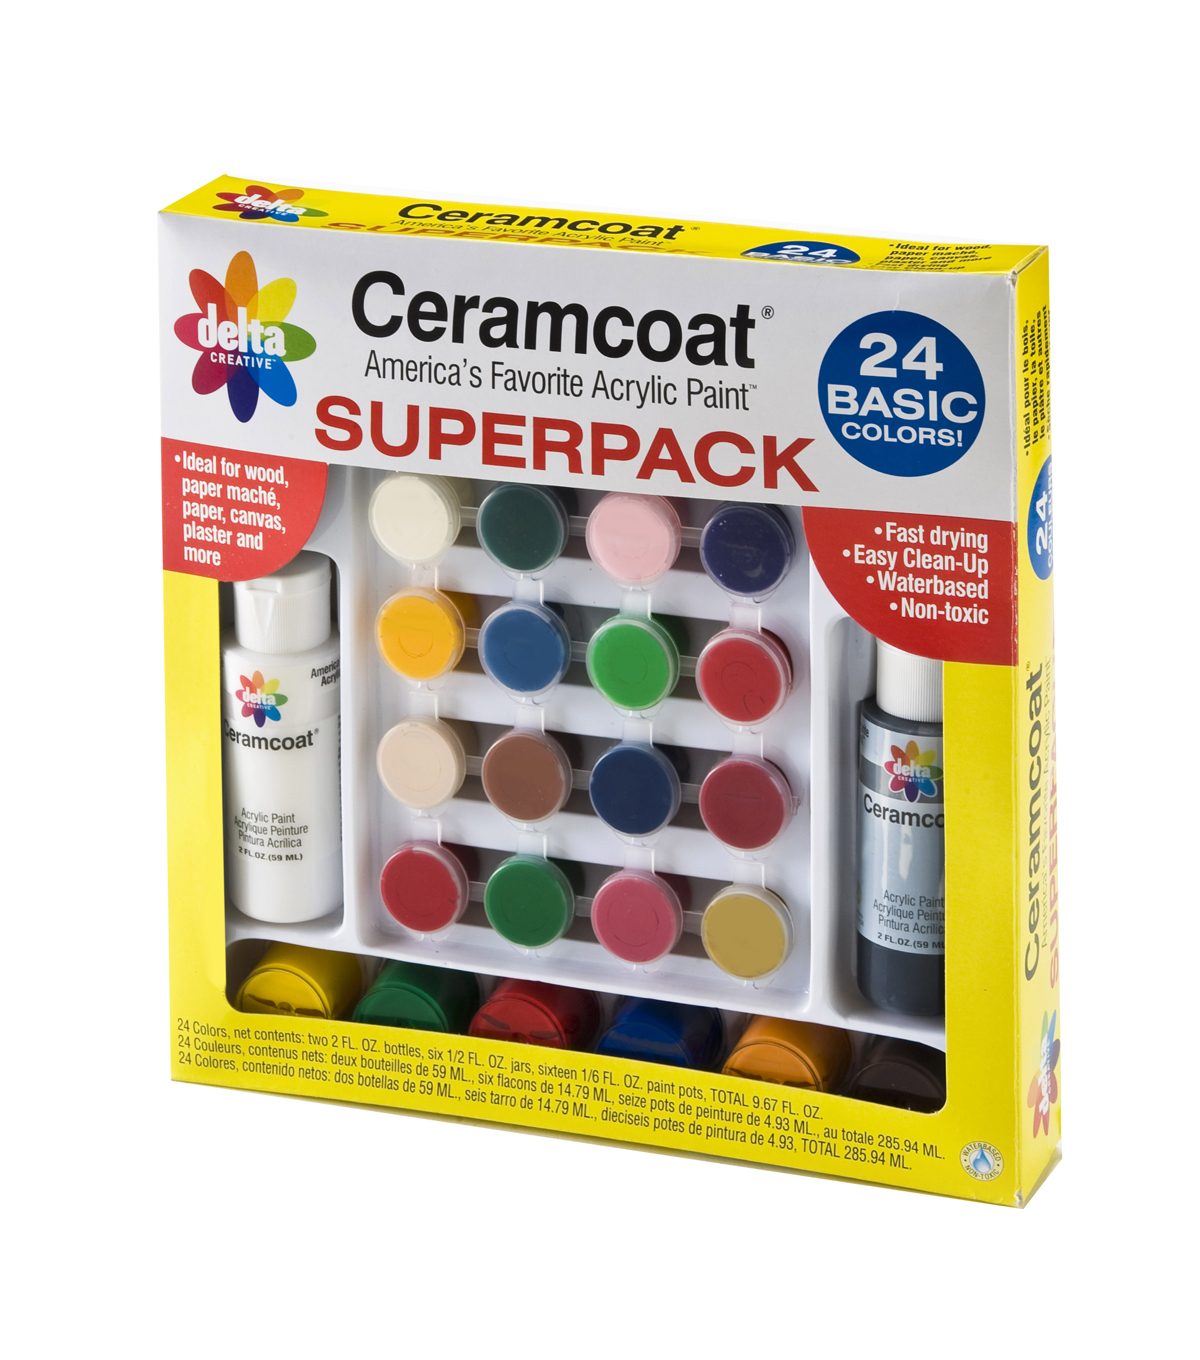 Ceramcoat Acrylic Paint Superpack Basic Colors